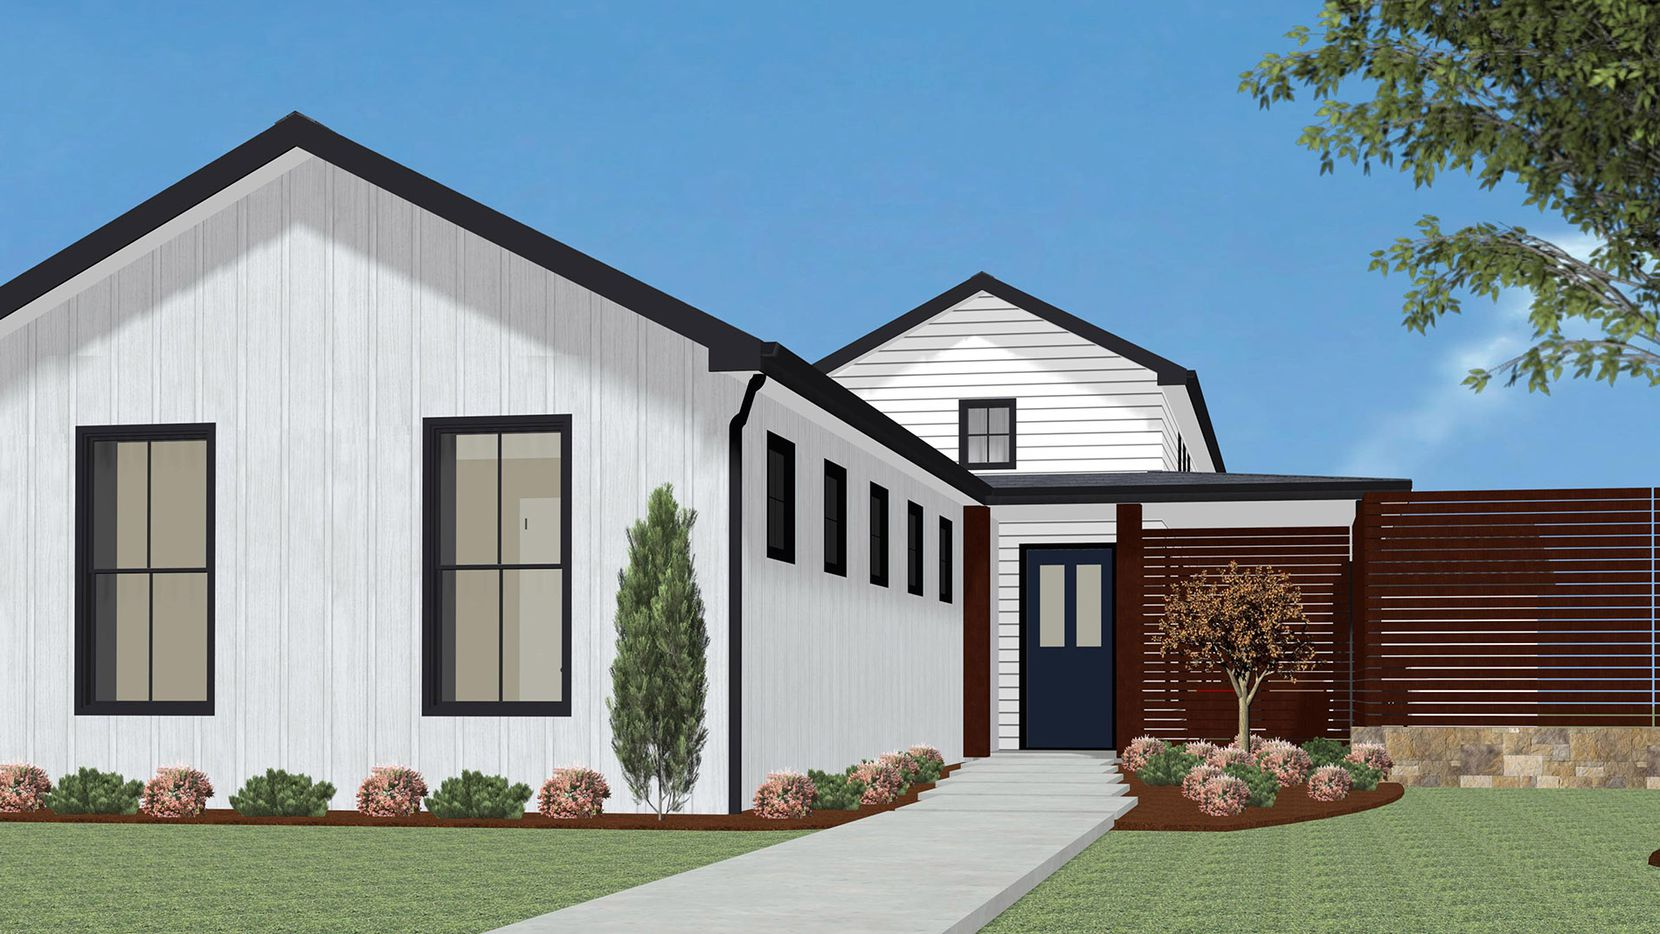 This is an artist's rendering of the Hoffmann Homes design nearing construction at 8824 Diceman Dr., near the Dallas Arboretum.